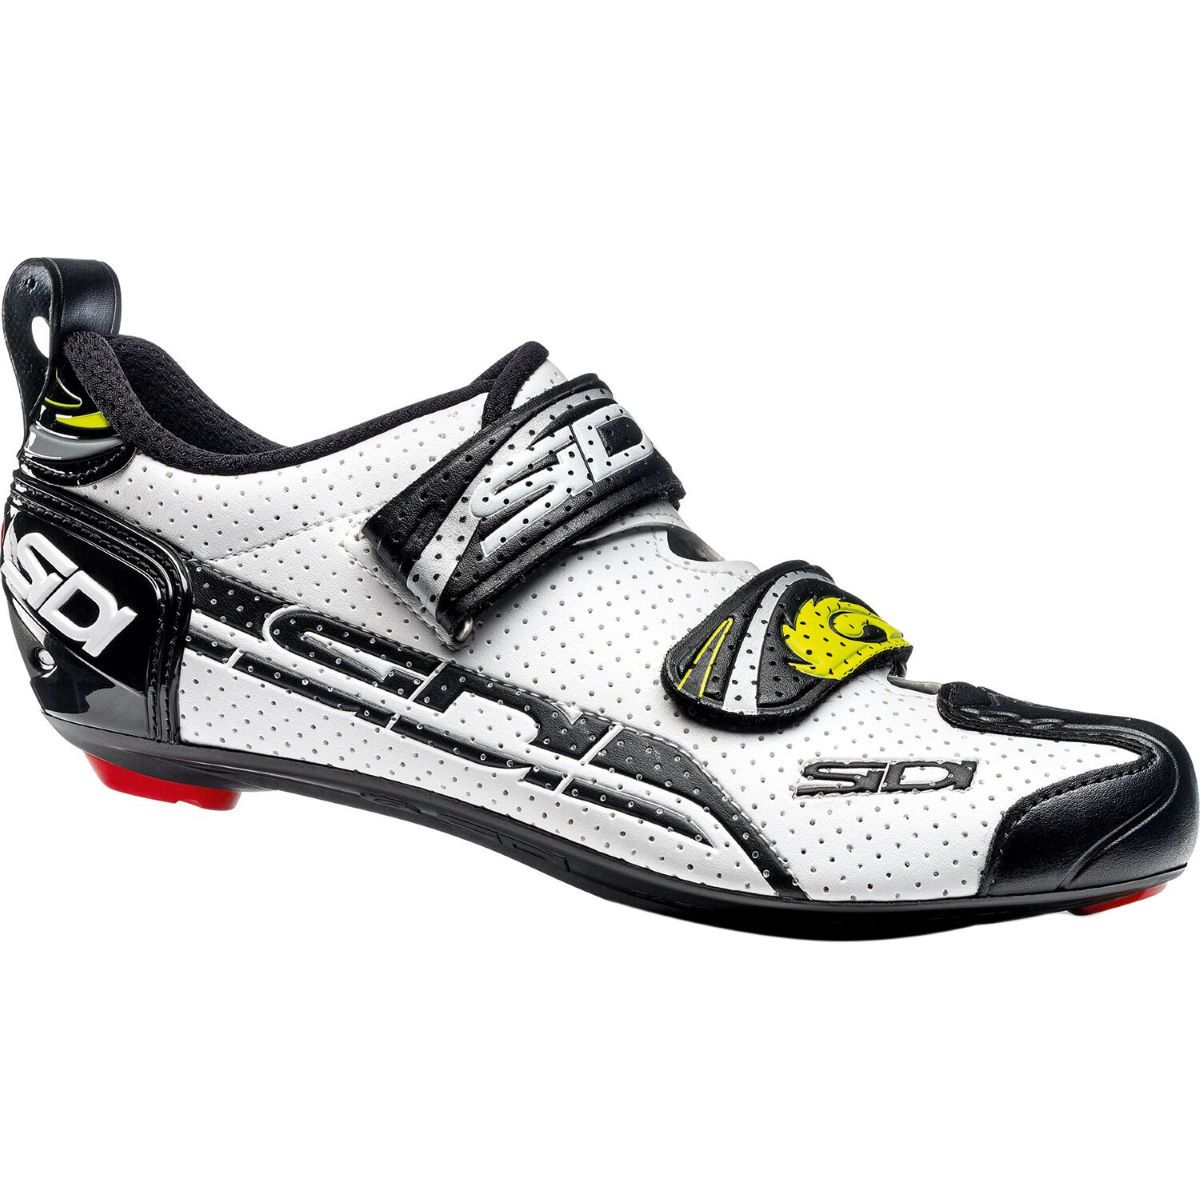 Chaussures de triathlon Sidi T-4 Air (carbone) - 40 Blanc/Noir